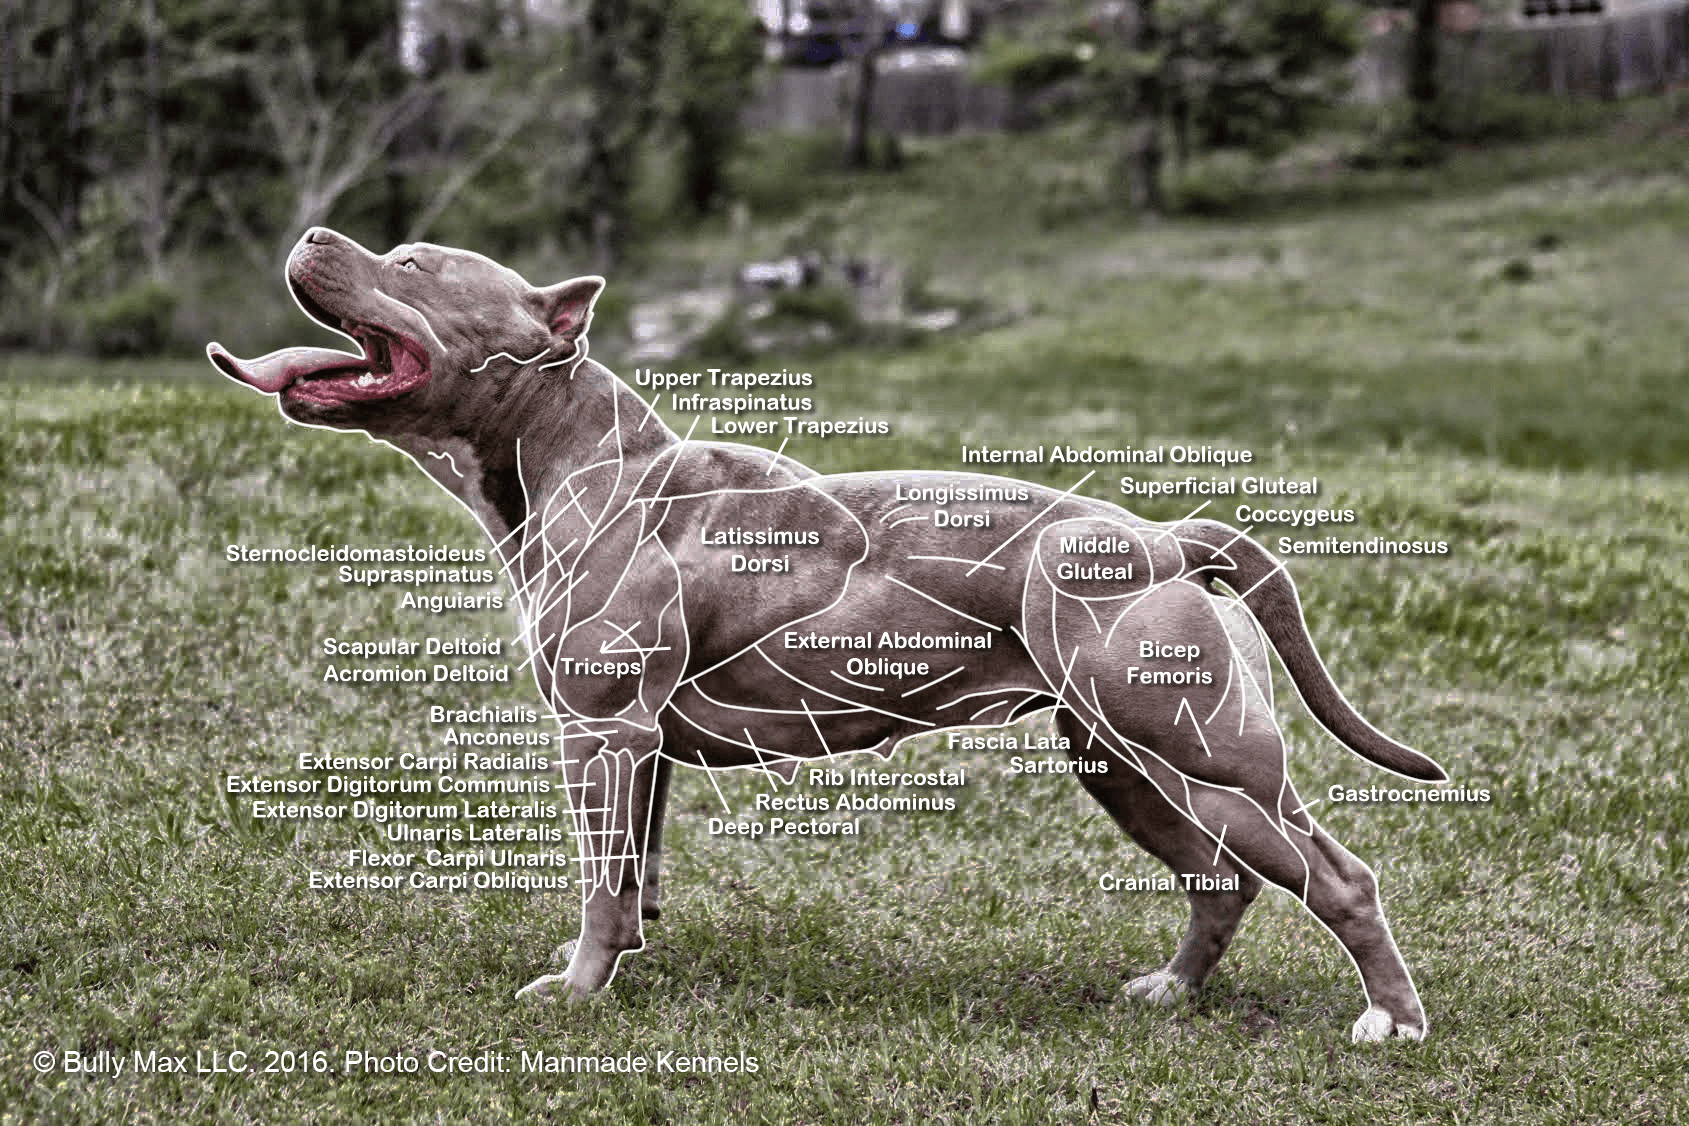 The Muscle Anatomy of Dogs - Everything You Need To Know